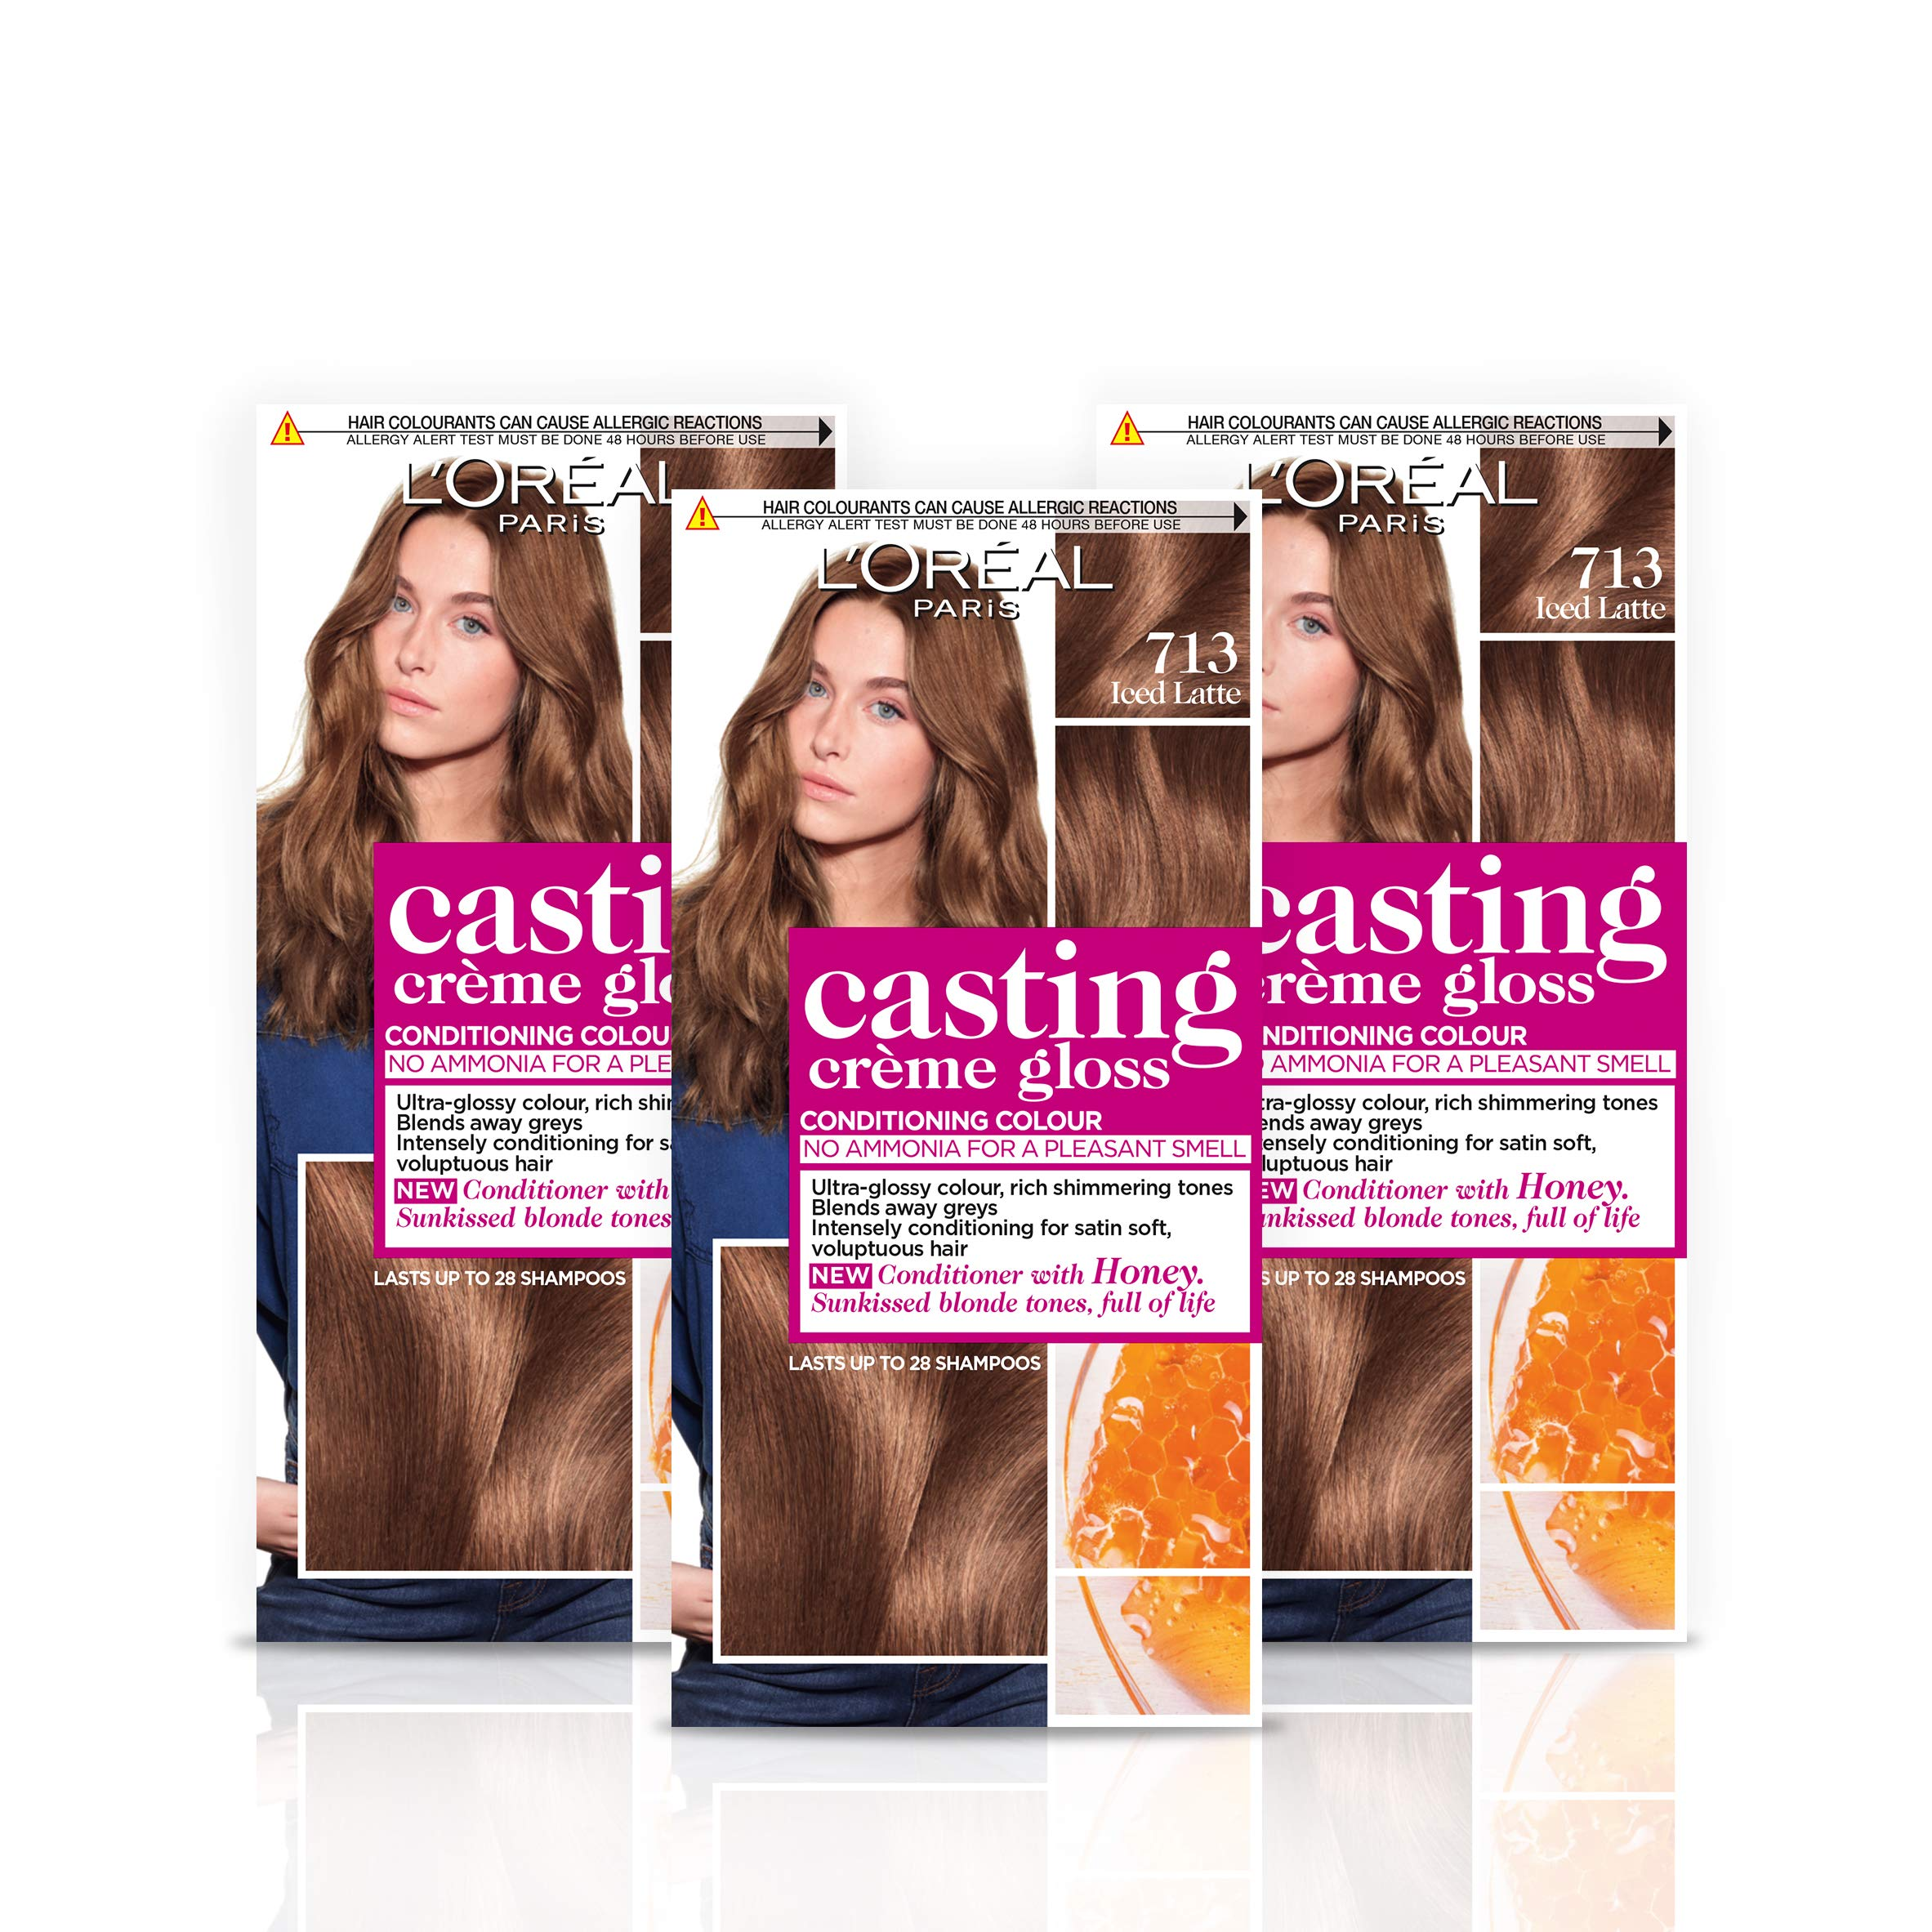 L'Oréal Paris Casting Crème Gloss Semi-Permanent Hair Dye, Ammonia-Free Formula & Honey-Infused Conditioner, Glossy Finish, Colour for Up to 28 Shampoos, Pack of 3, Colour: 713 Iced Latte